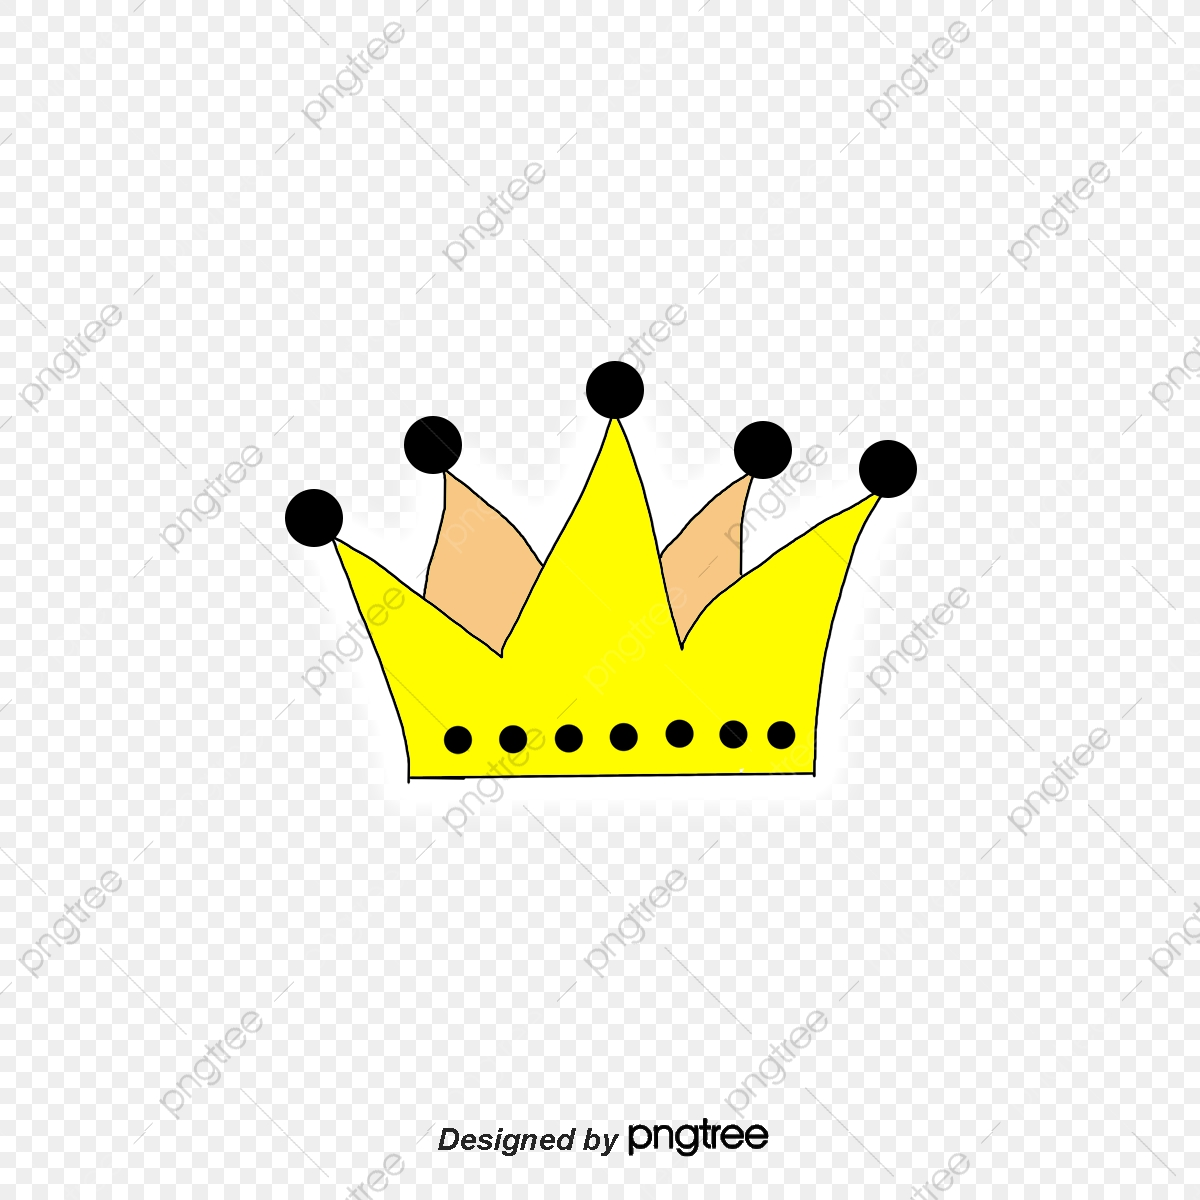 Cartoon Crown Png Images Vector And Psd Files Free Download On Pngtree Illustration about the crown on a red cushion vector. https pngtree com freepng cartoon crown png material 3043339 html